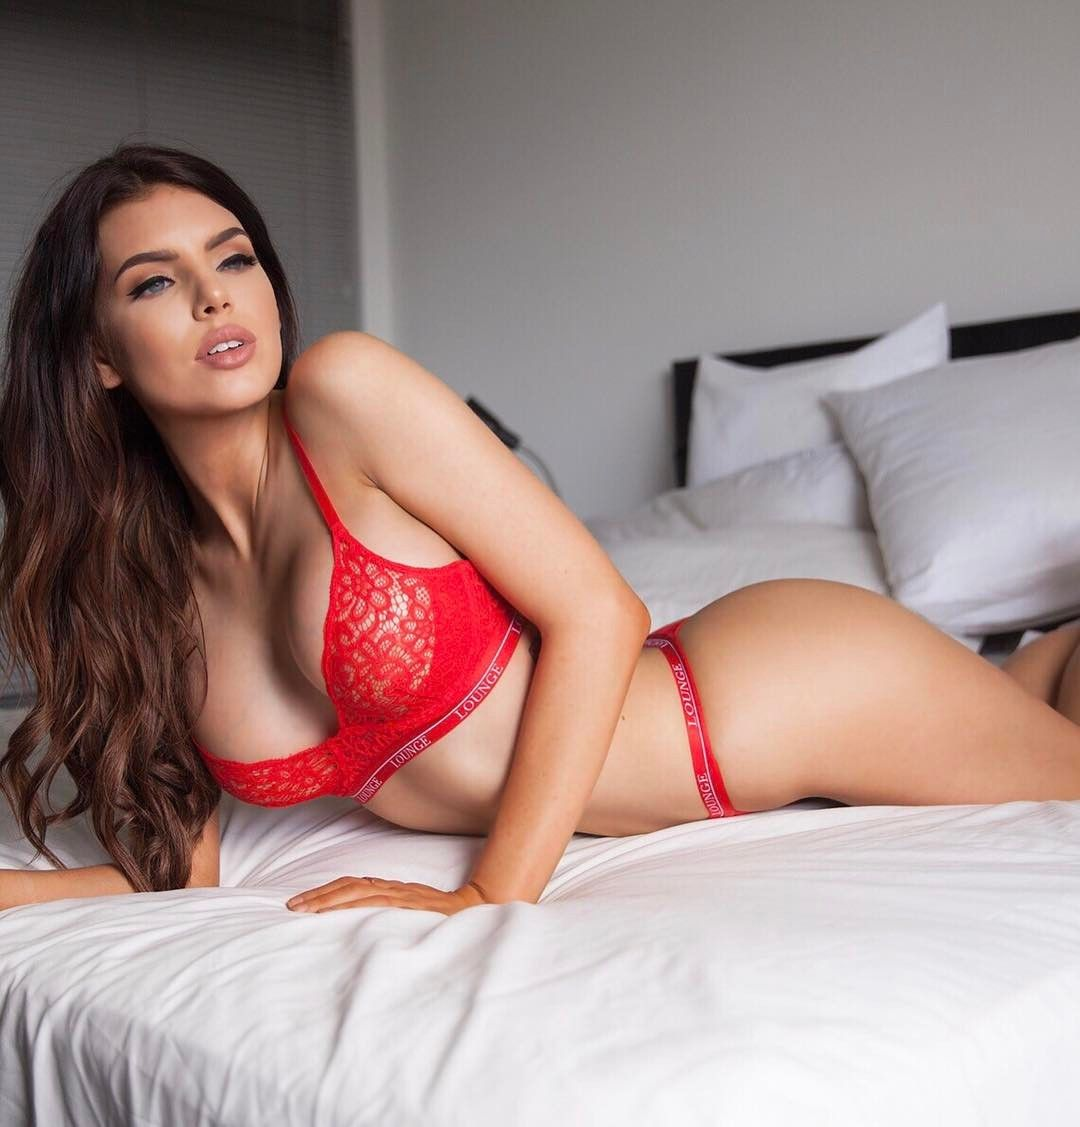 Nicole Thorne Hot Red Lingerie Images - Nicole Thorne Hot Red Lingerie Images